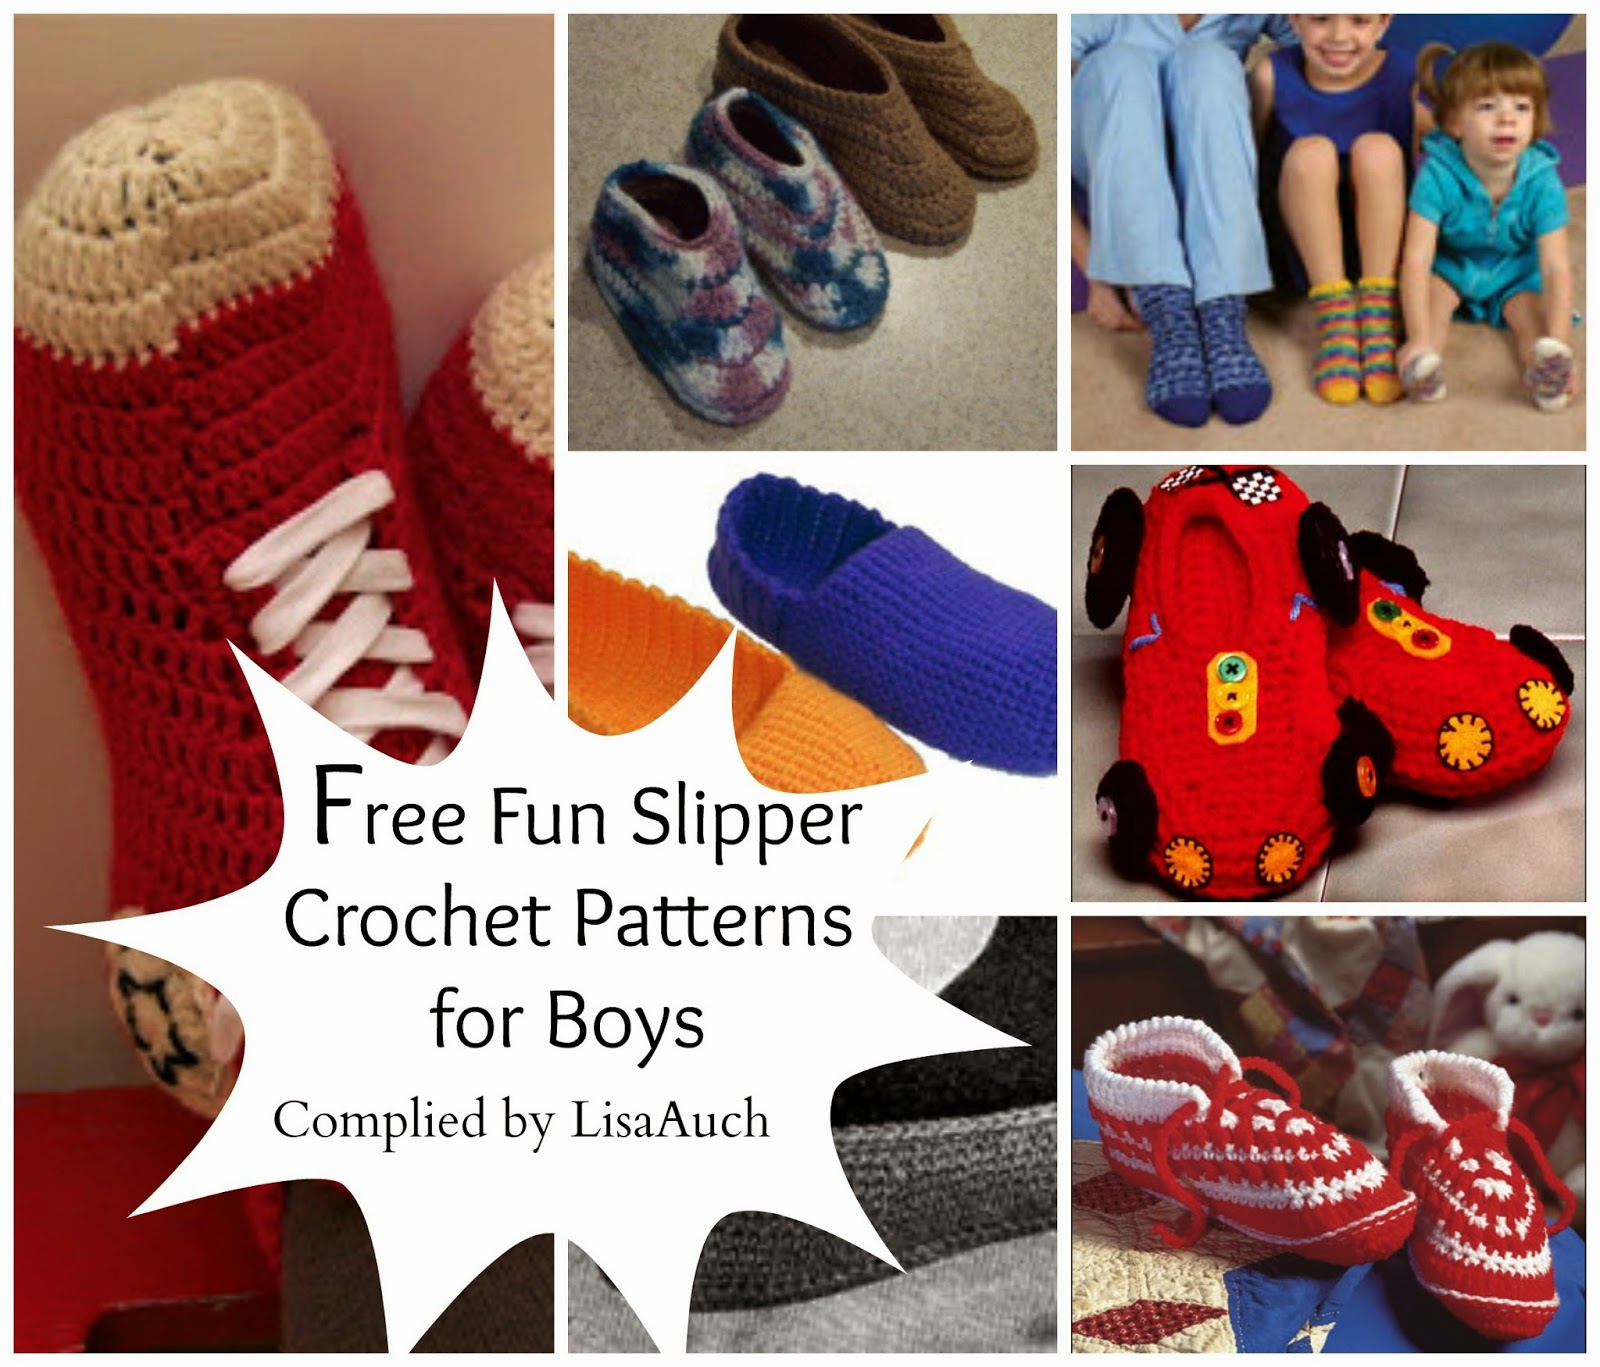 FREE Crochet Slipper Patterns for Boys | Free Crochet Patterns and ...